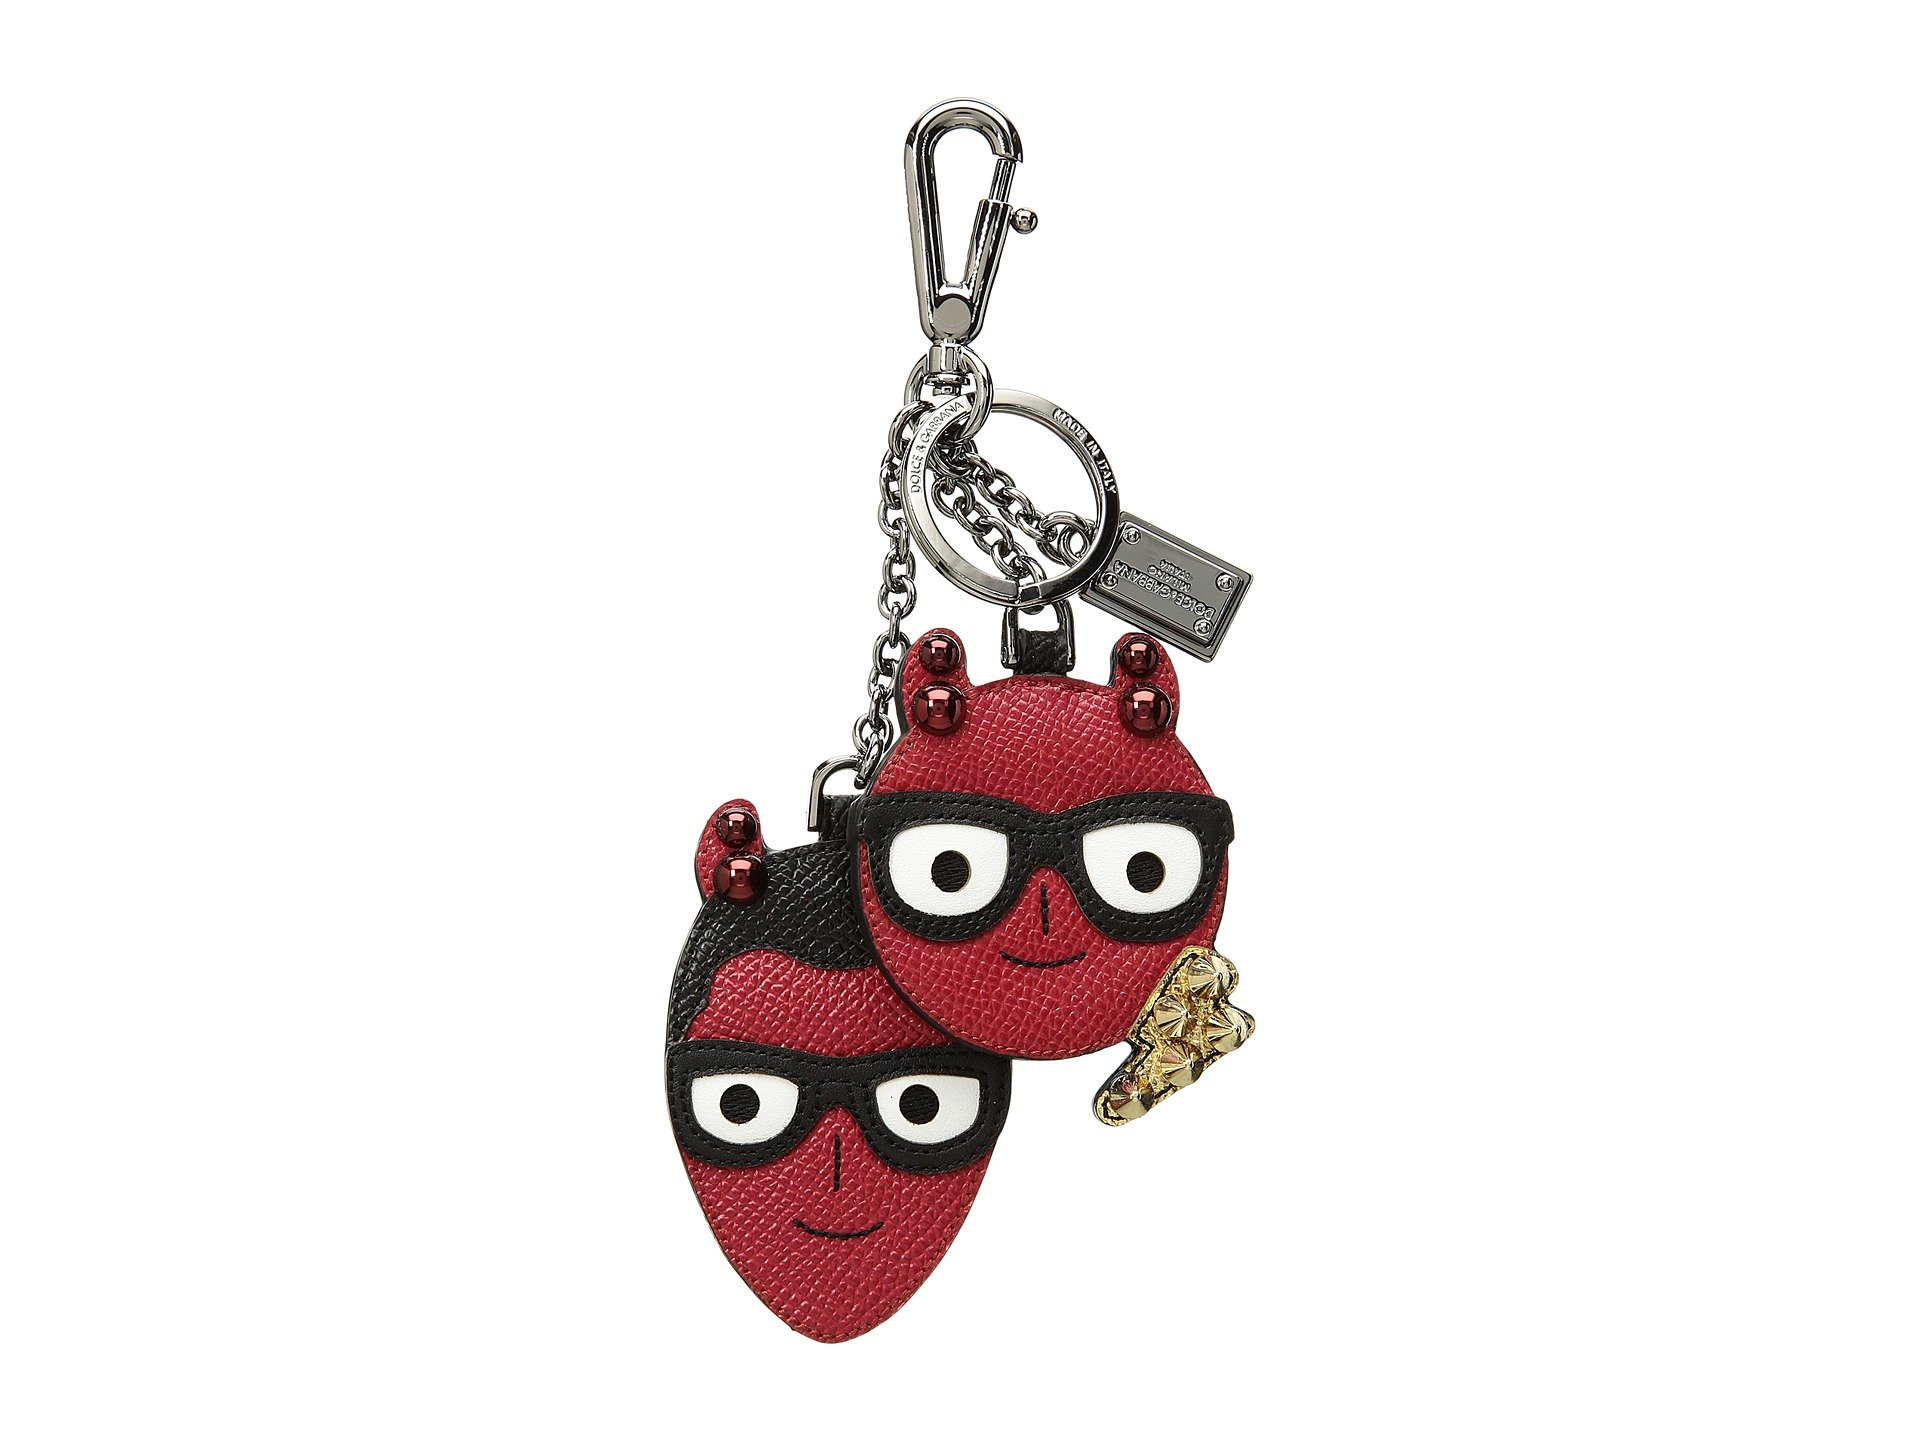 Billetera Clip para Hombre Dolce and Gabbana Devil Key Ring  + Dolce & Gabbana en VeoyCompro.net